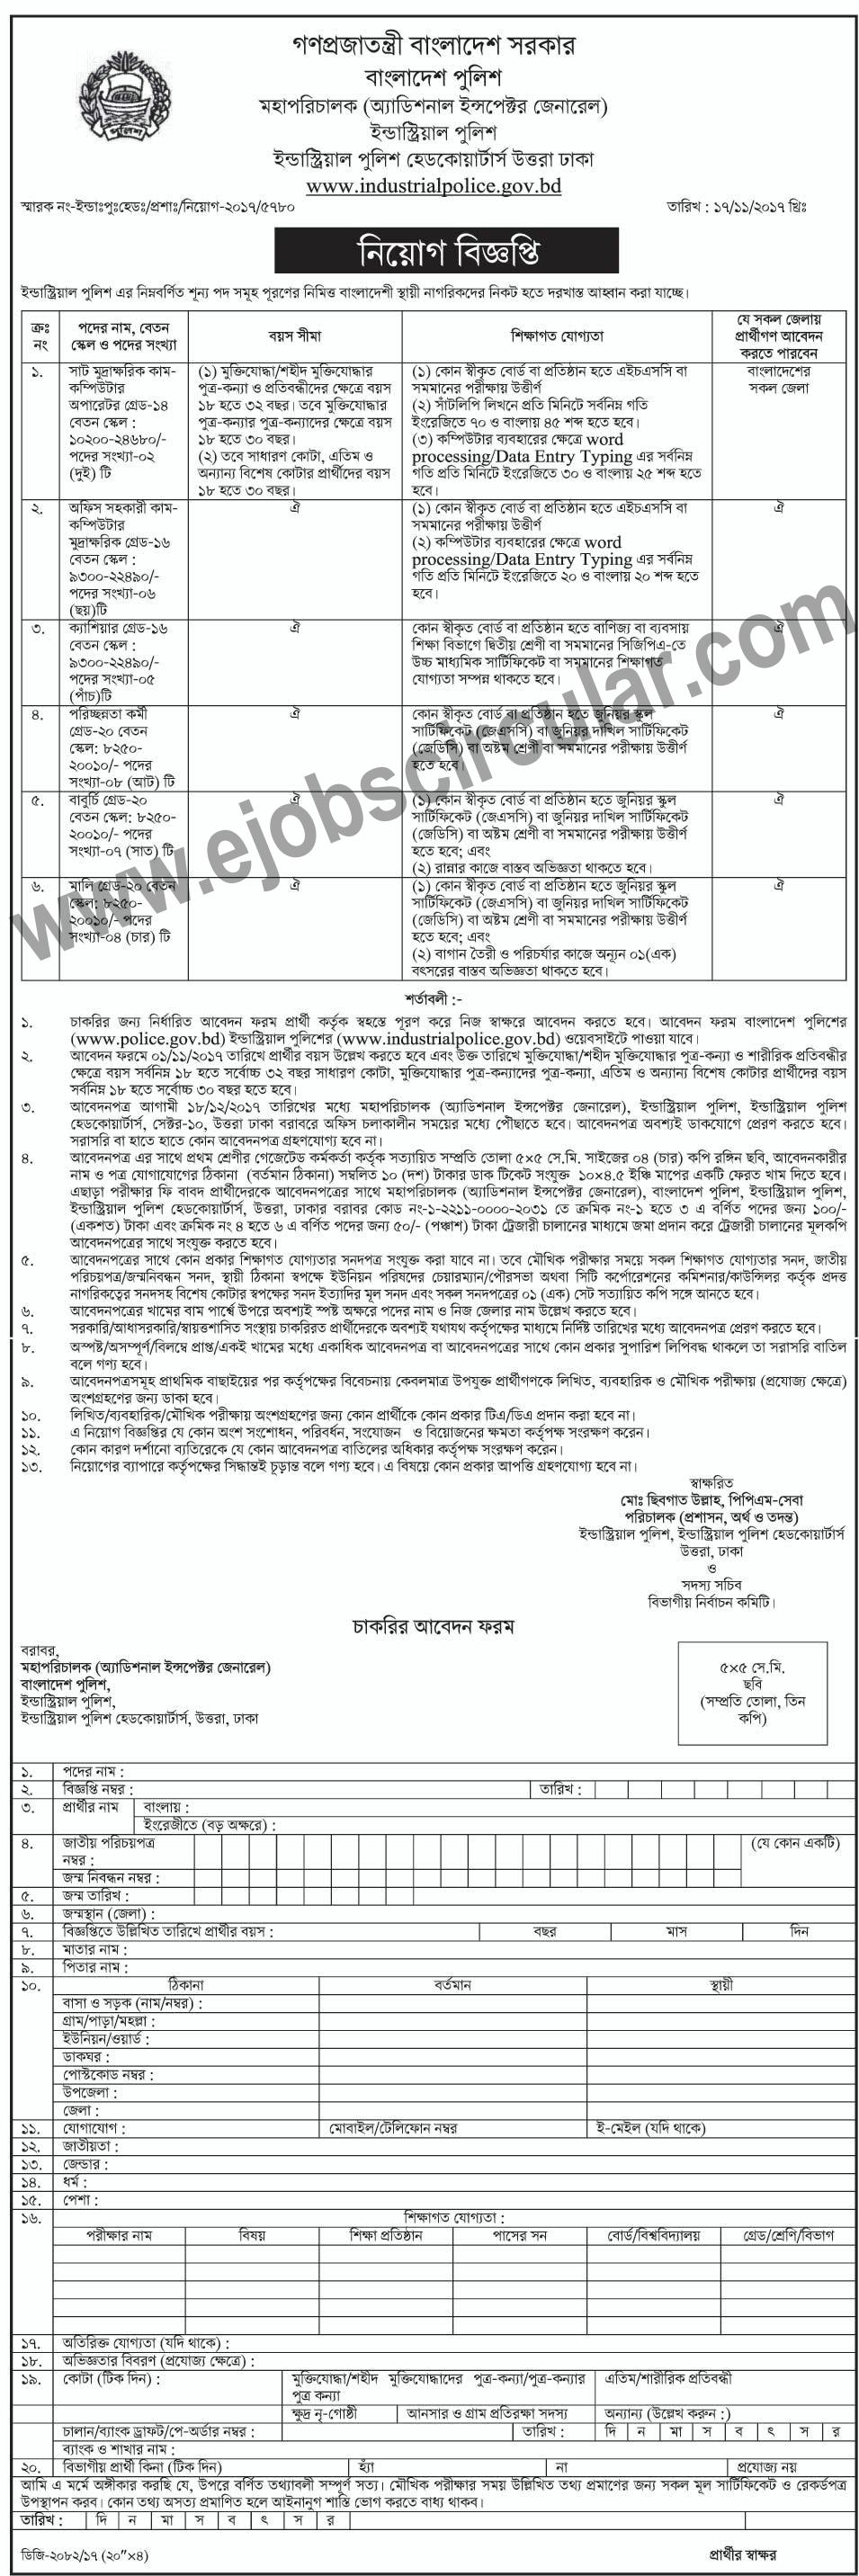 bangladesh police clearance online application